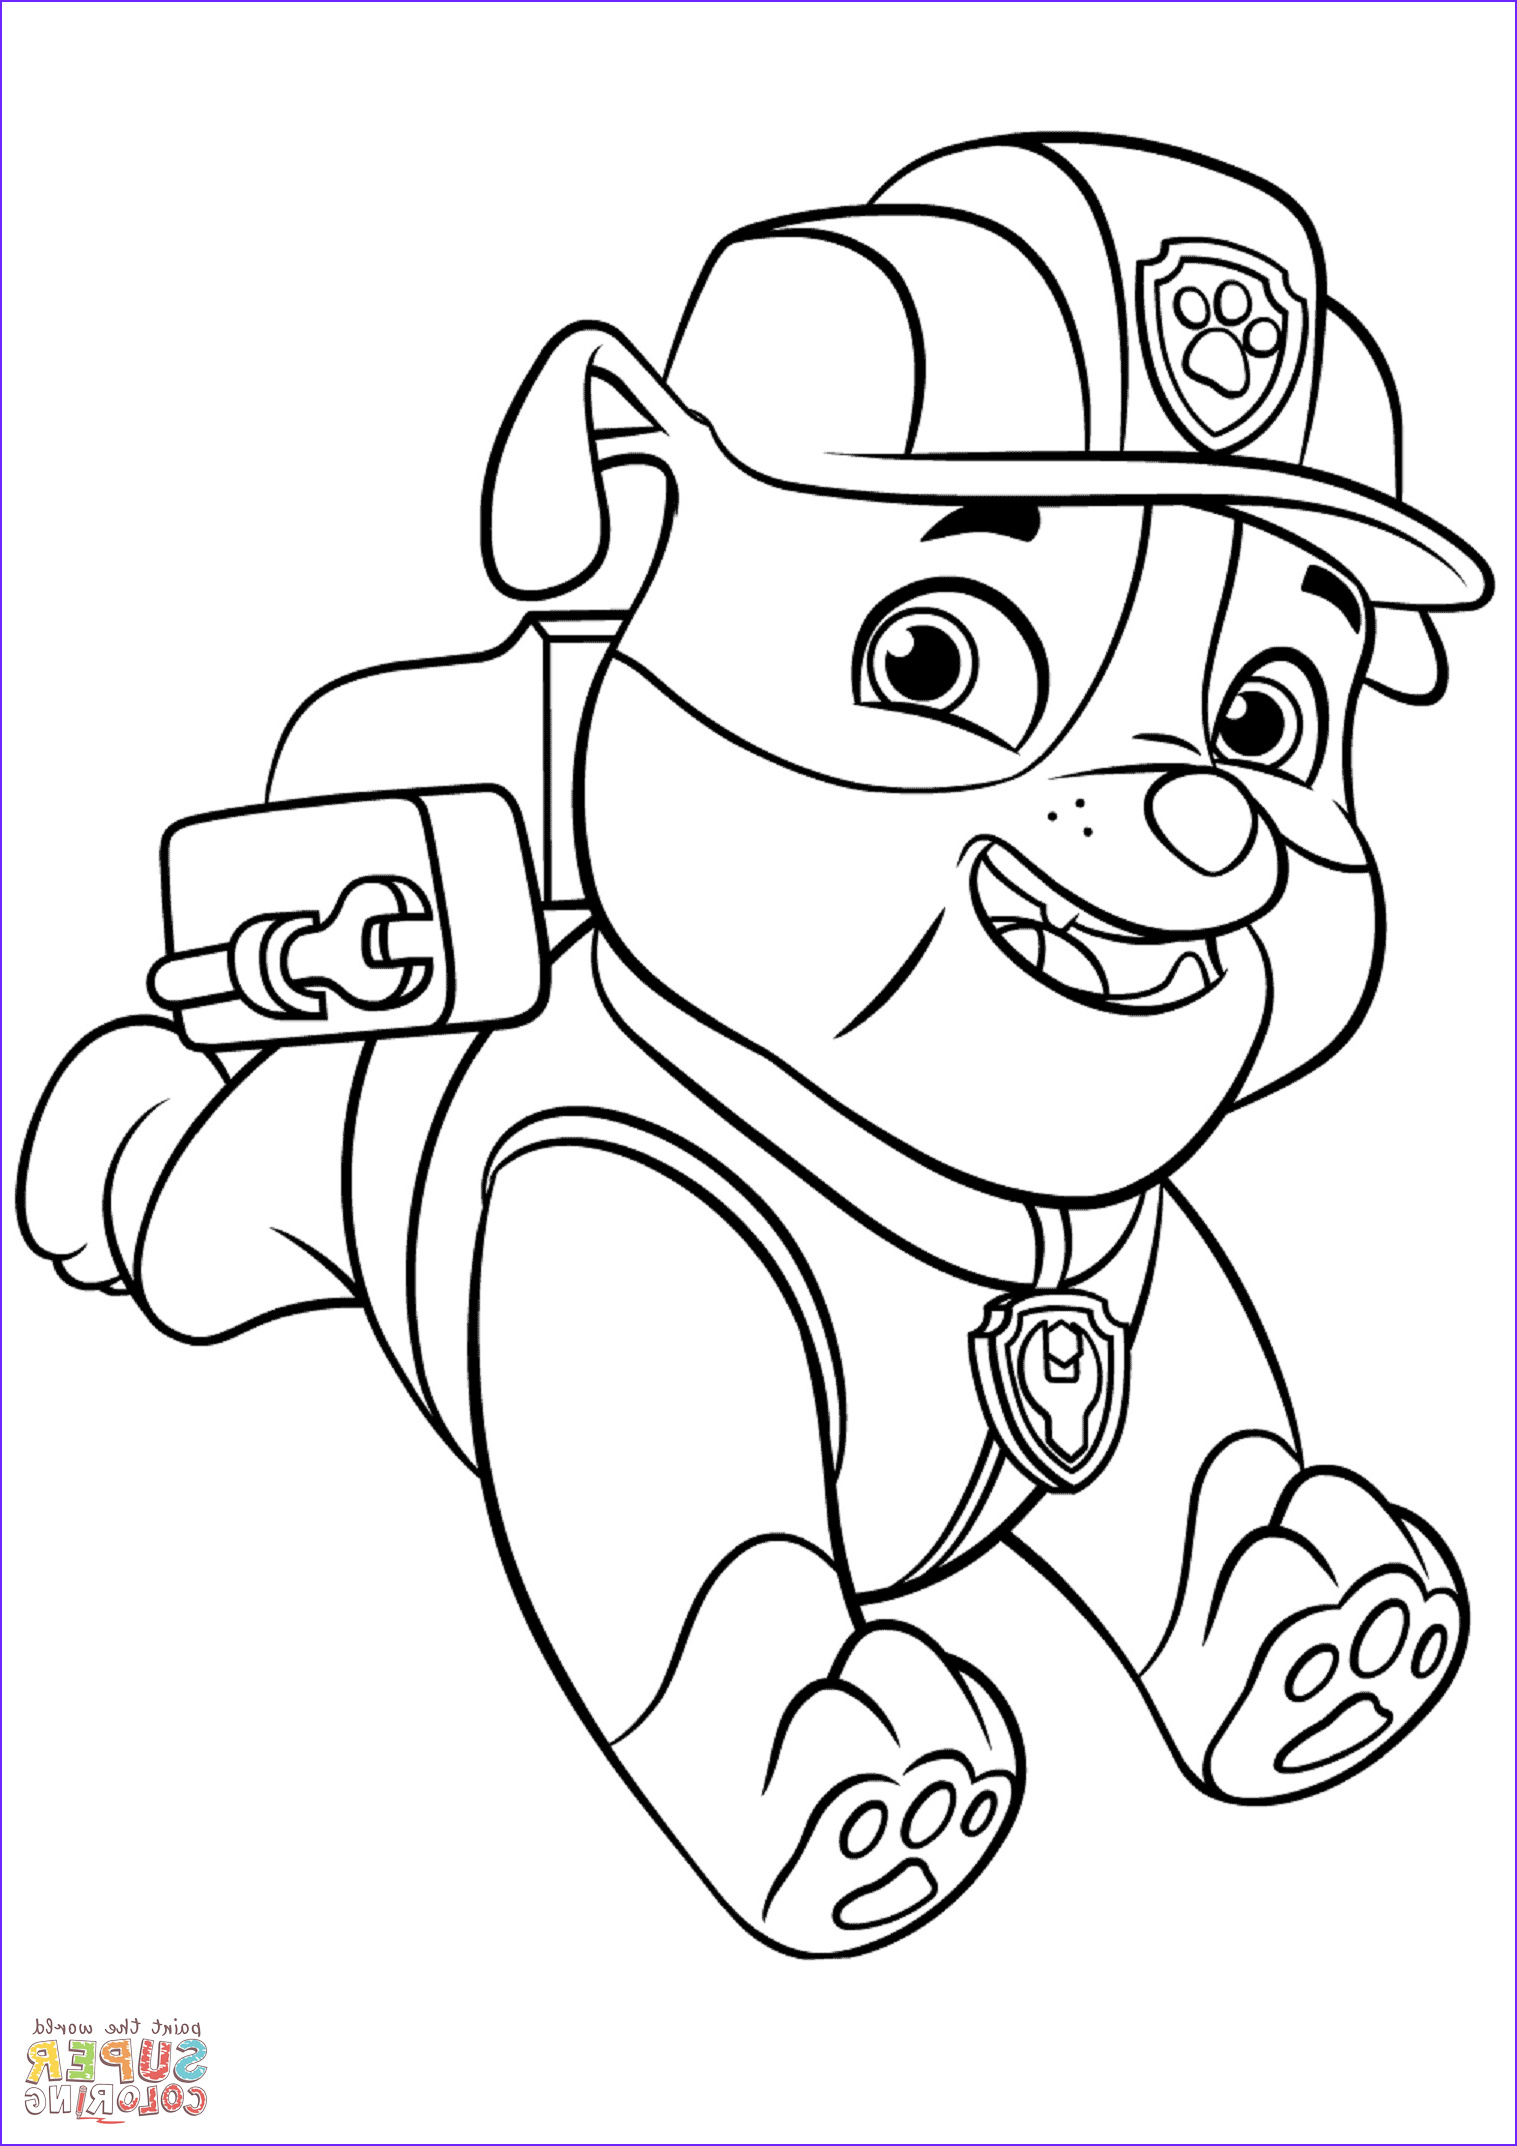 Paw Patrol Coloring Book New Photos Paw Patrol Rubble with Backpack Coloring Page